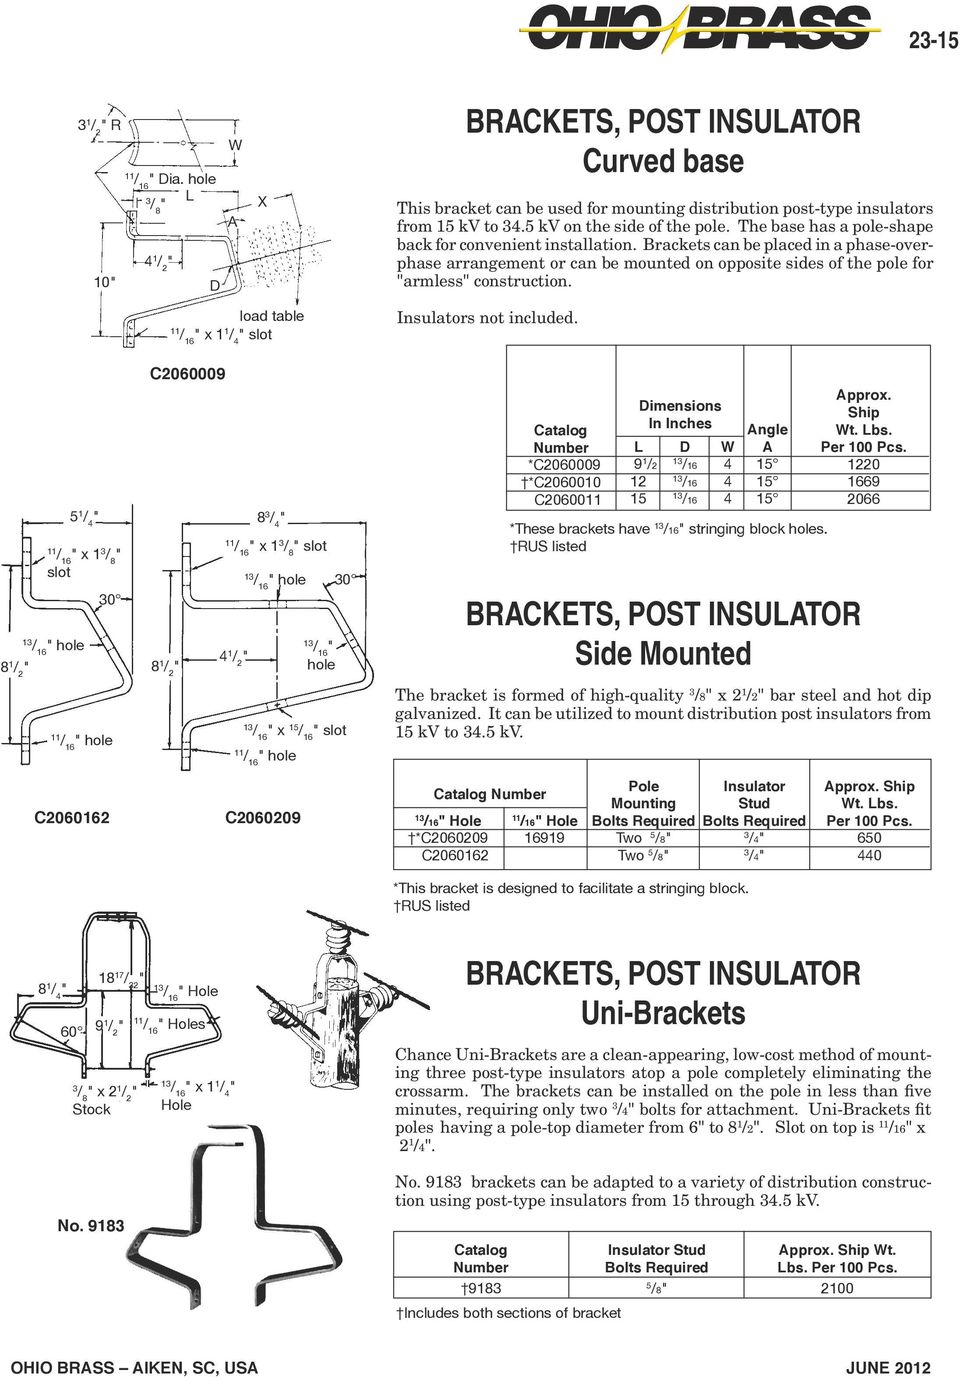 Brackets can be placed in a phase-overphase arrangement or can be mounted on opposite sides of the pole for armless construction. Insulators not included.